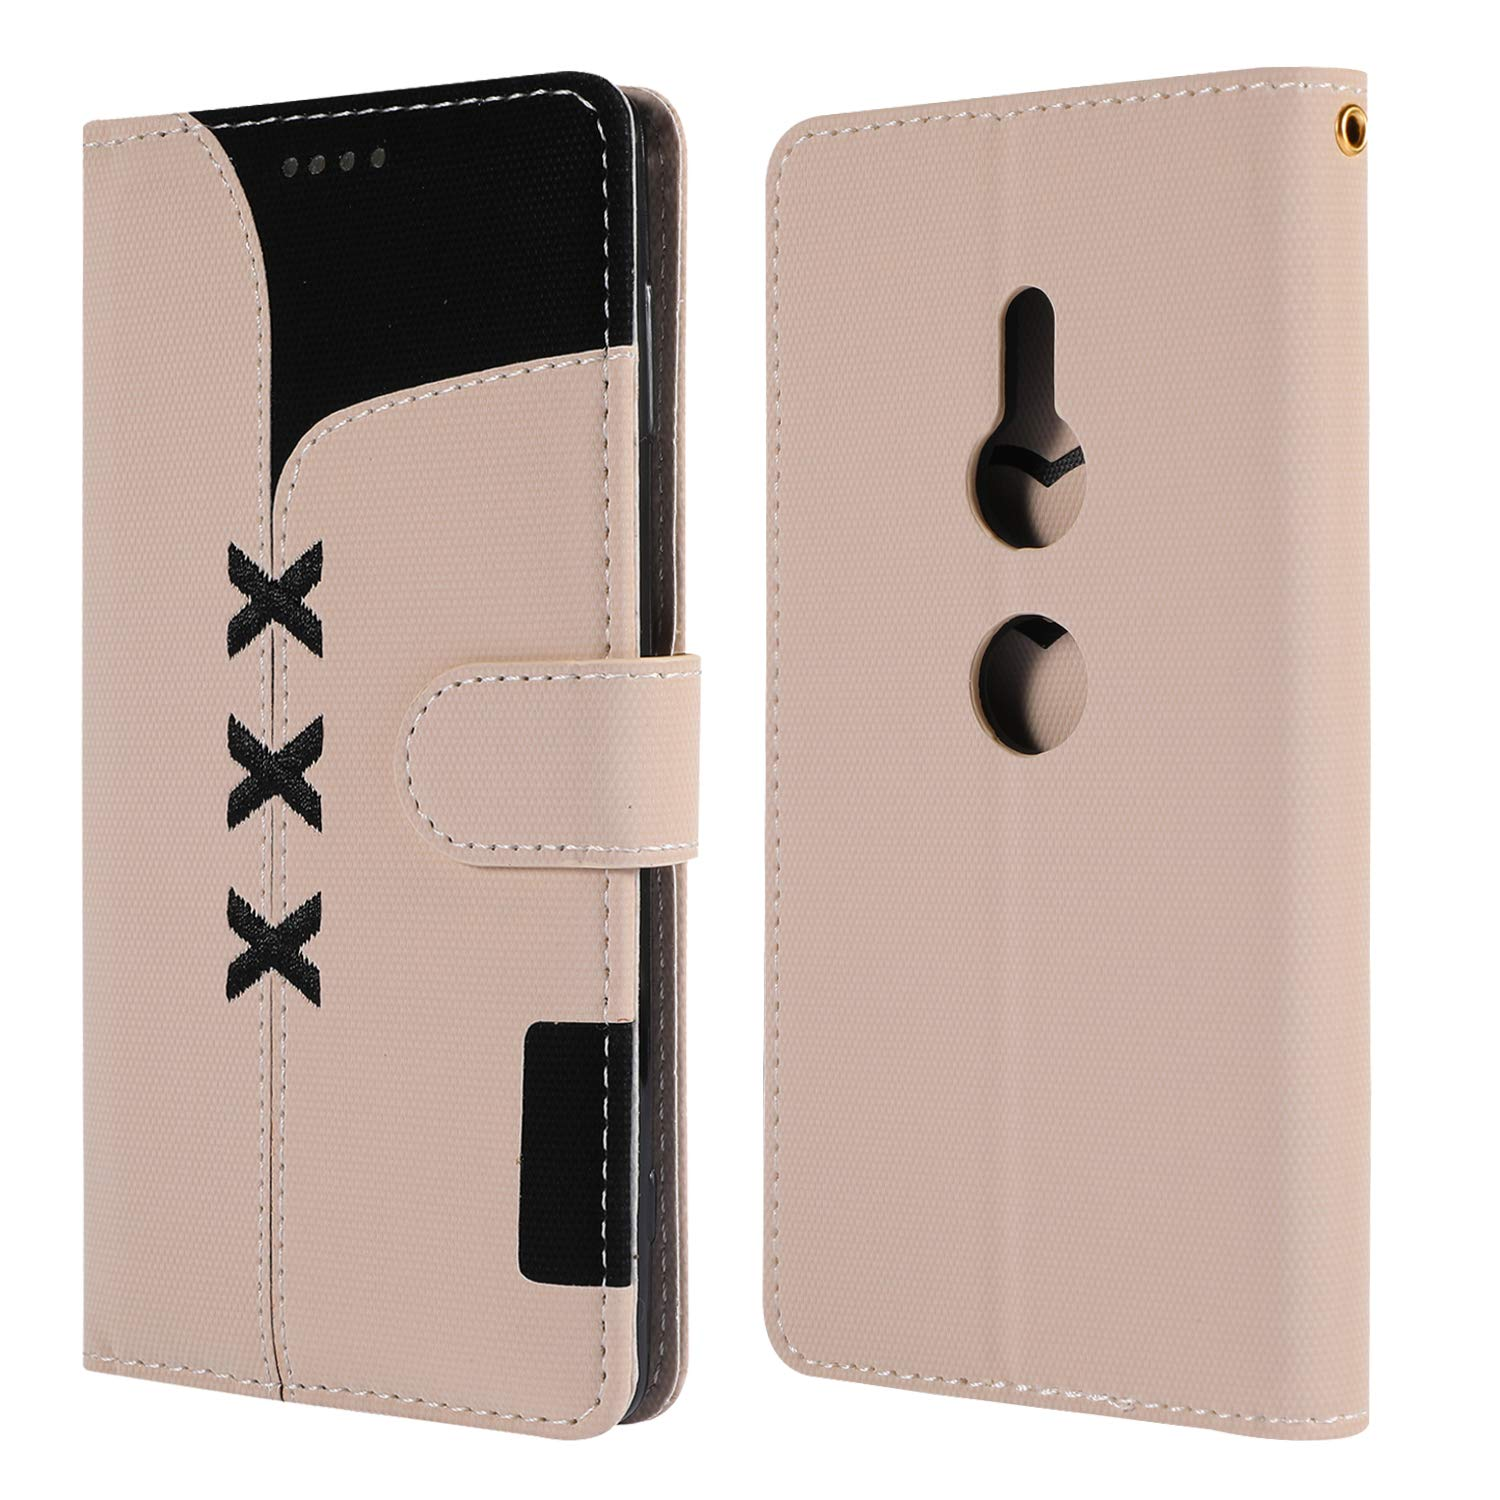 Lomogo Leather Wallet Case with Kickstand Card Holder Shockproof Flip Case Cover for Sony Xperia XZ2 LOGHU040411 Azure Sony Xperia XZ2 Case